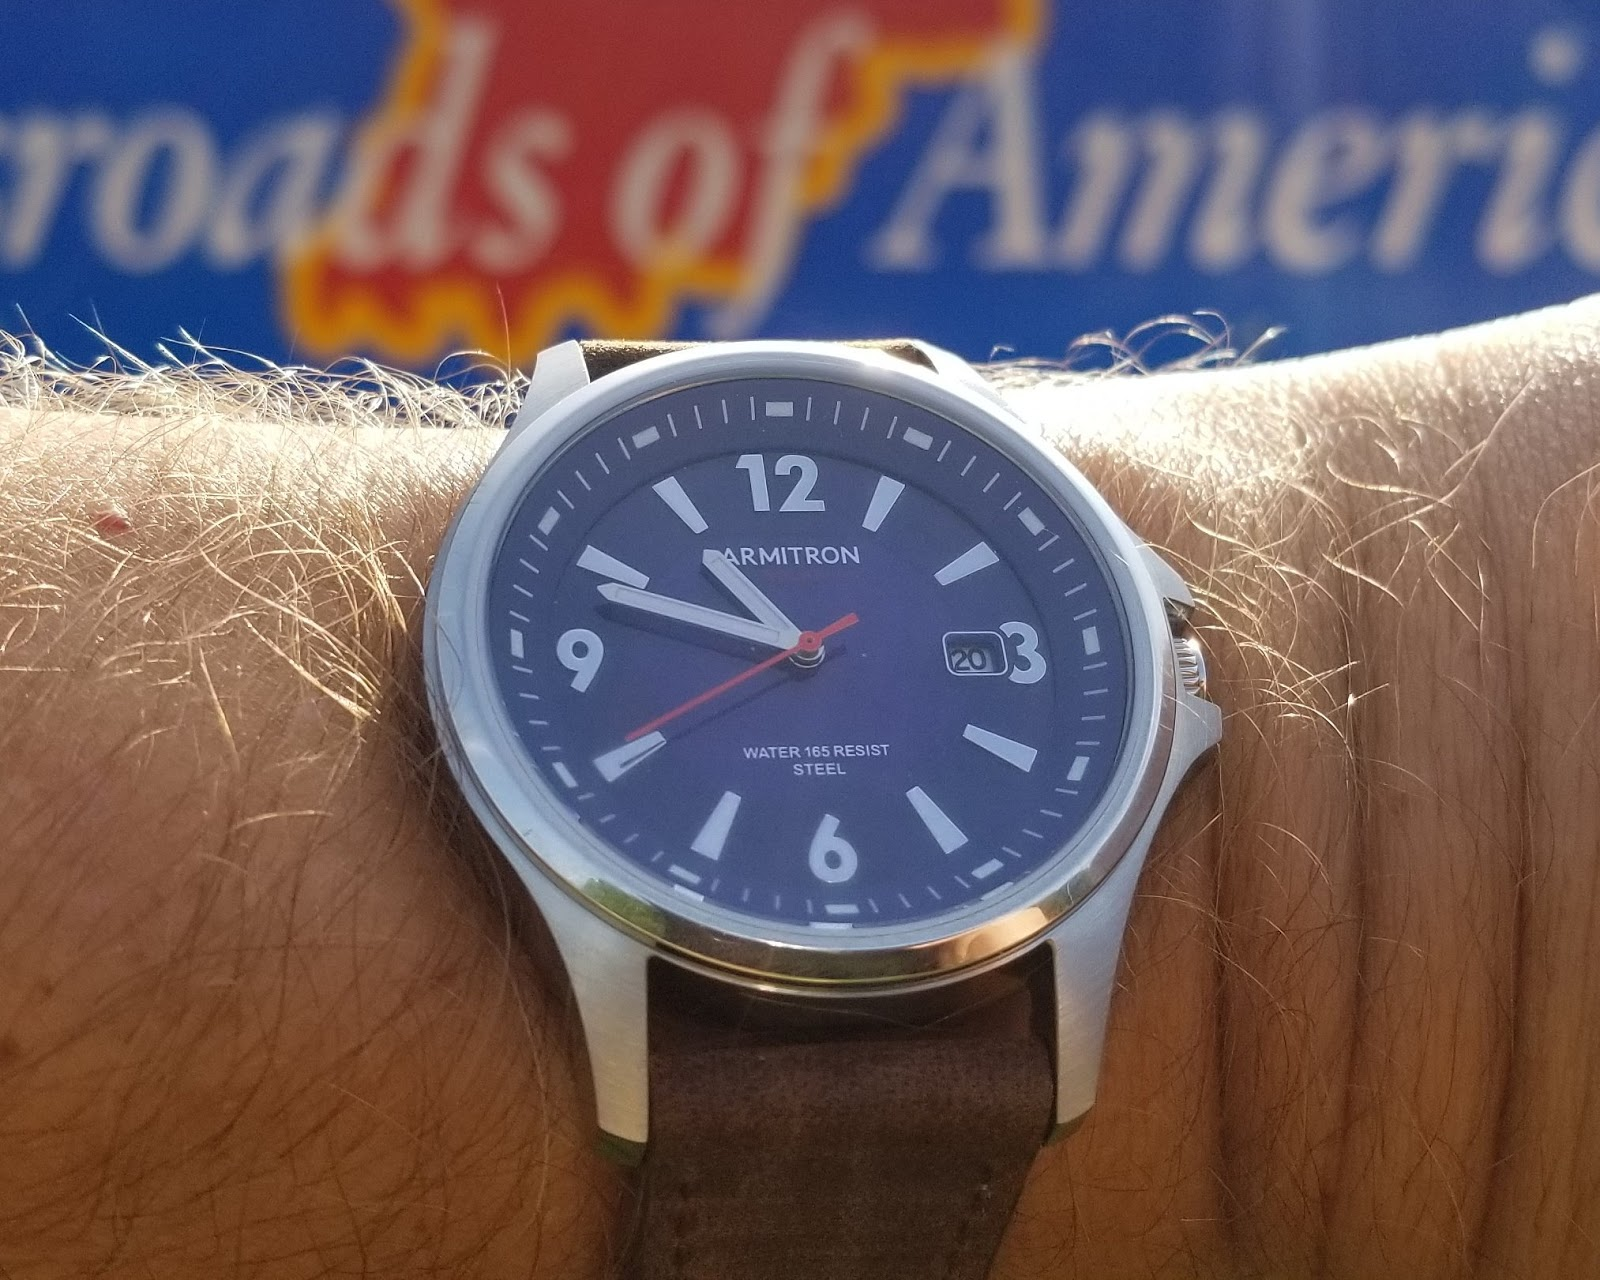 92abf6501 This Armitron solar watch looks great with my suit and with a water  resistant rating of 50 meters/165 feet it is durable enough to ...